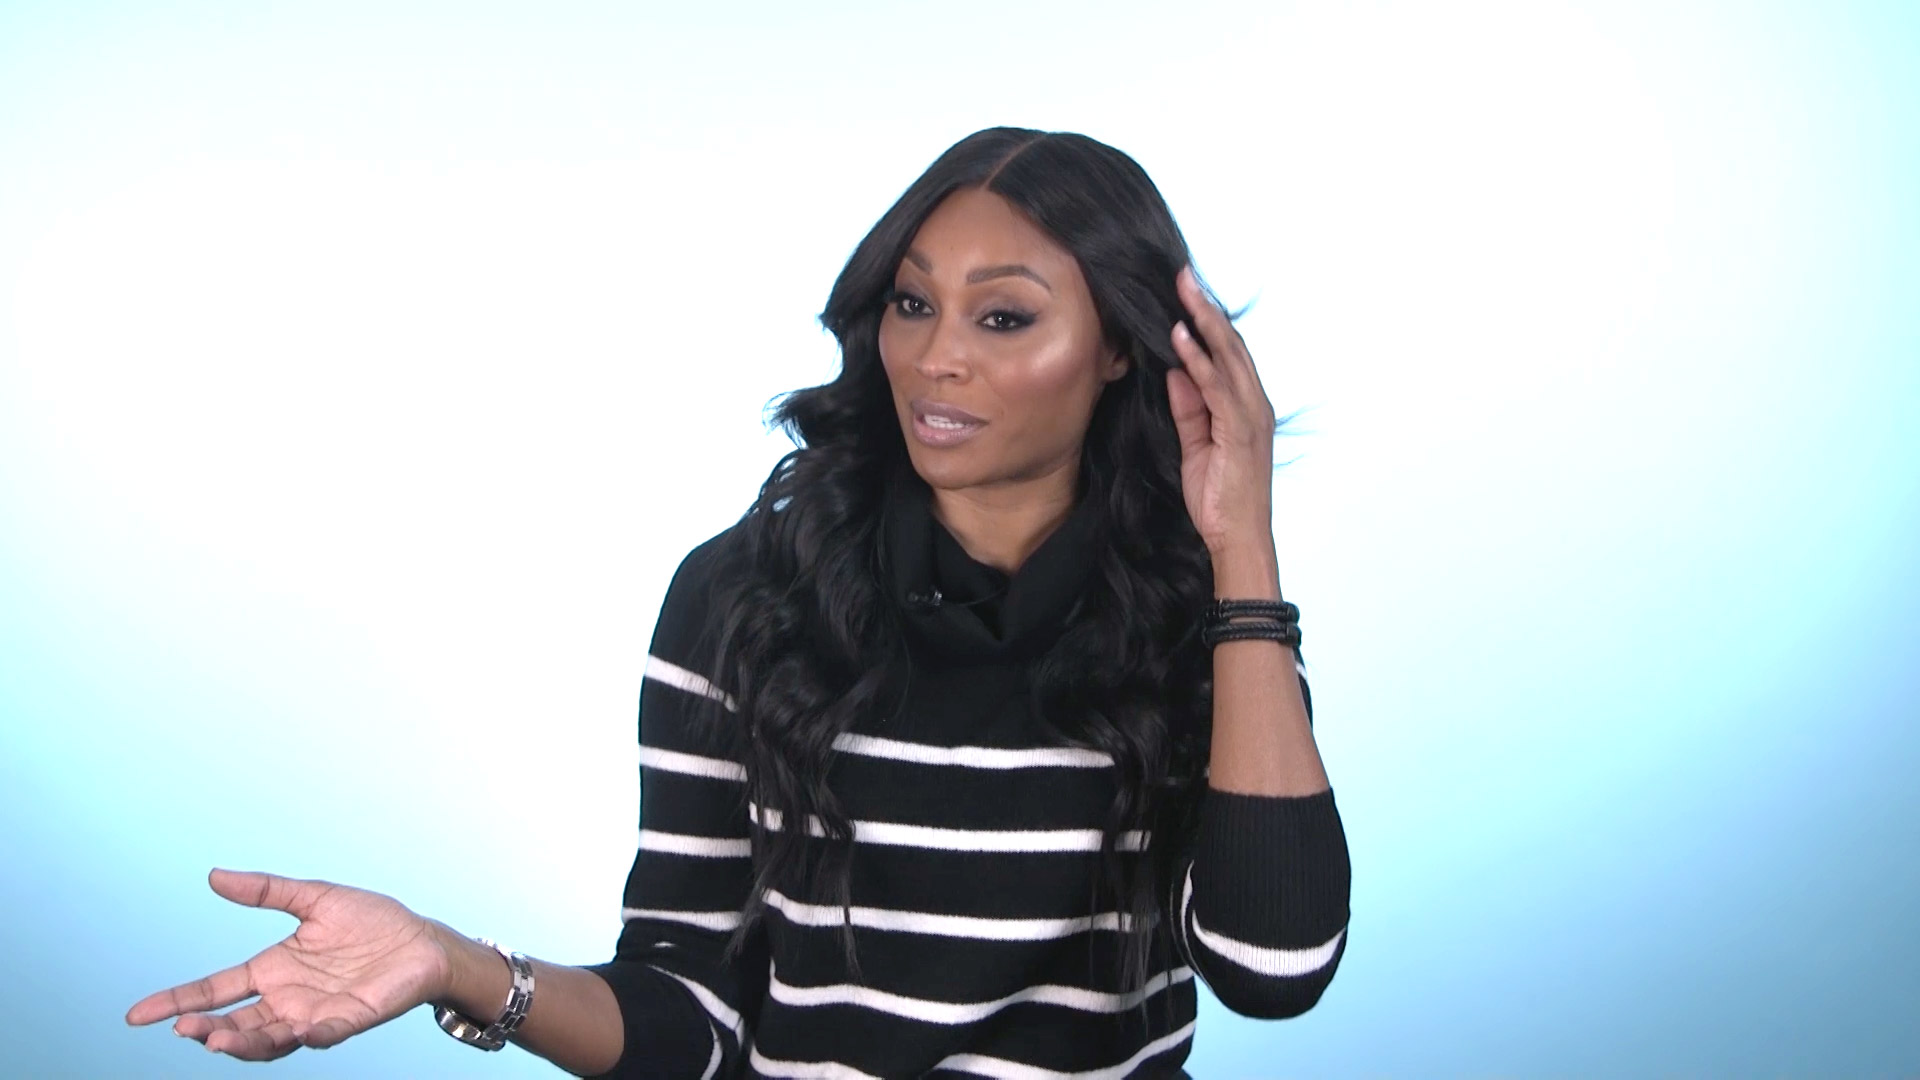 The Real Housewives Of Atlanta Fashionista Dishes On Her Style Inspiration  For Her New Crib.